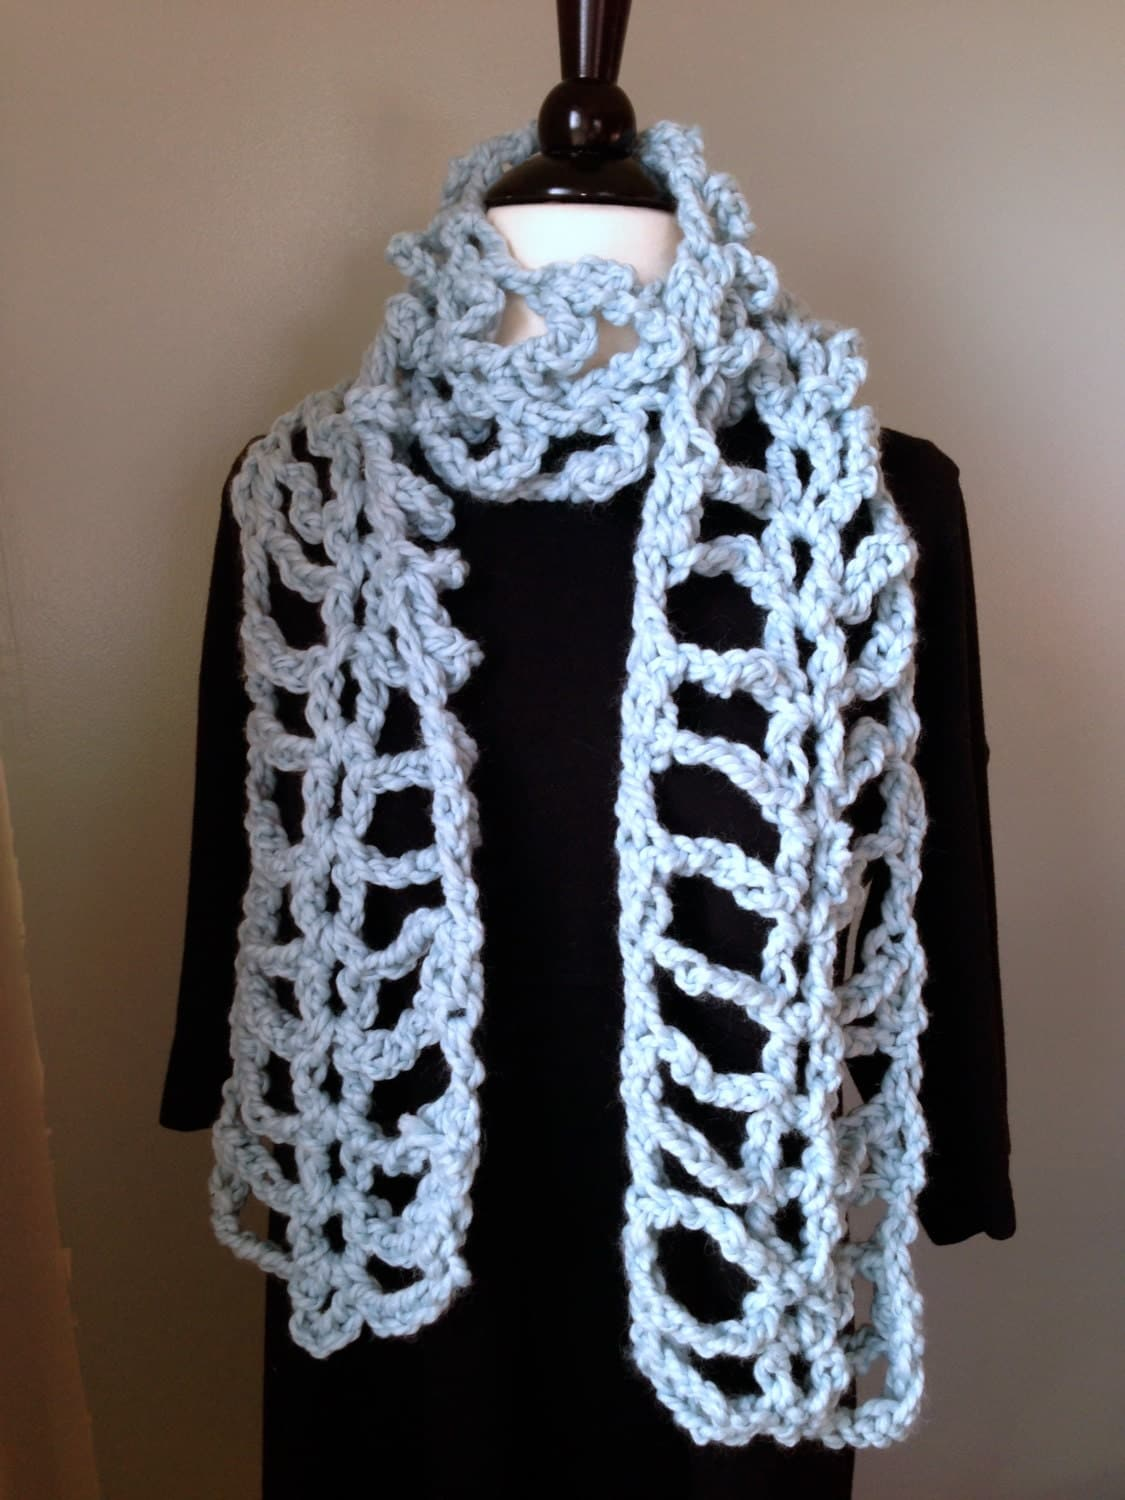 Crochet Scarf Pattern Easy Quick : Crochet Scarf Pattern Super fun quick and easy project